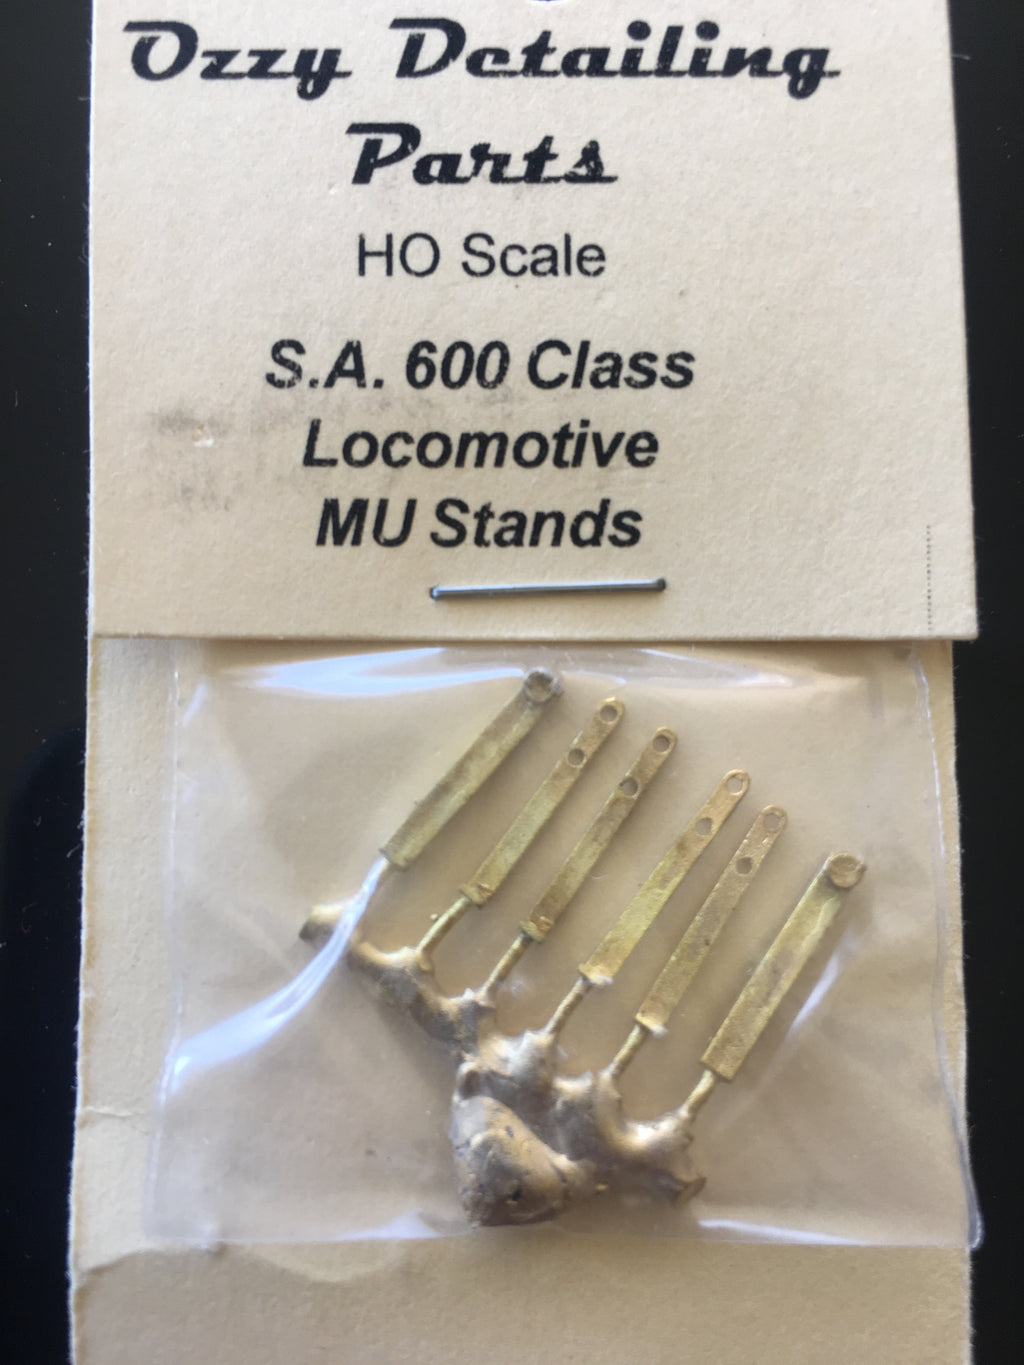 830 / 600 MU & Handrail Stanchions for 830/600 Class S.A.R. Ozzy Brass #100